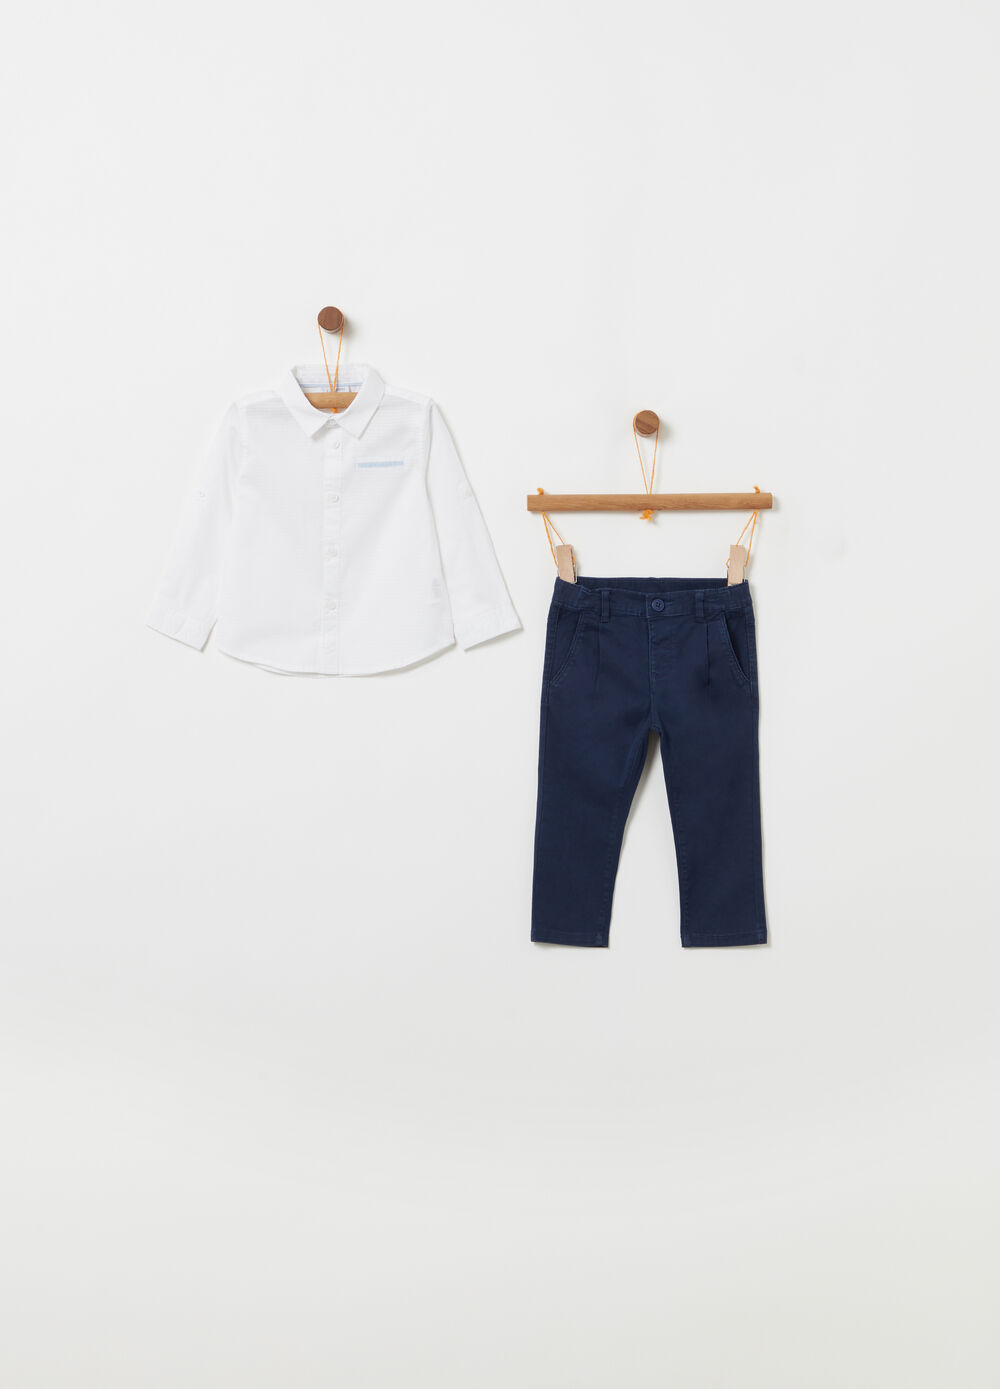 100% cotton outfit consisting of shirt and trousers